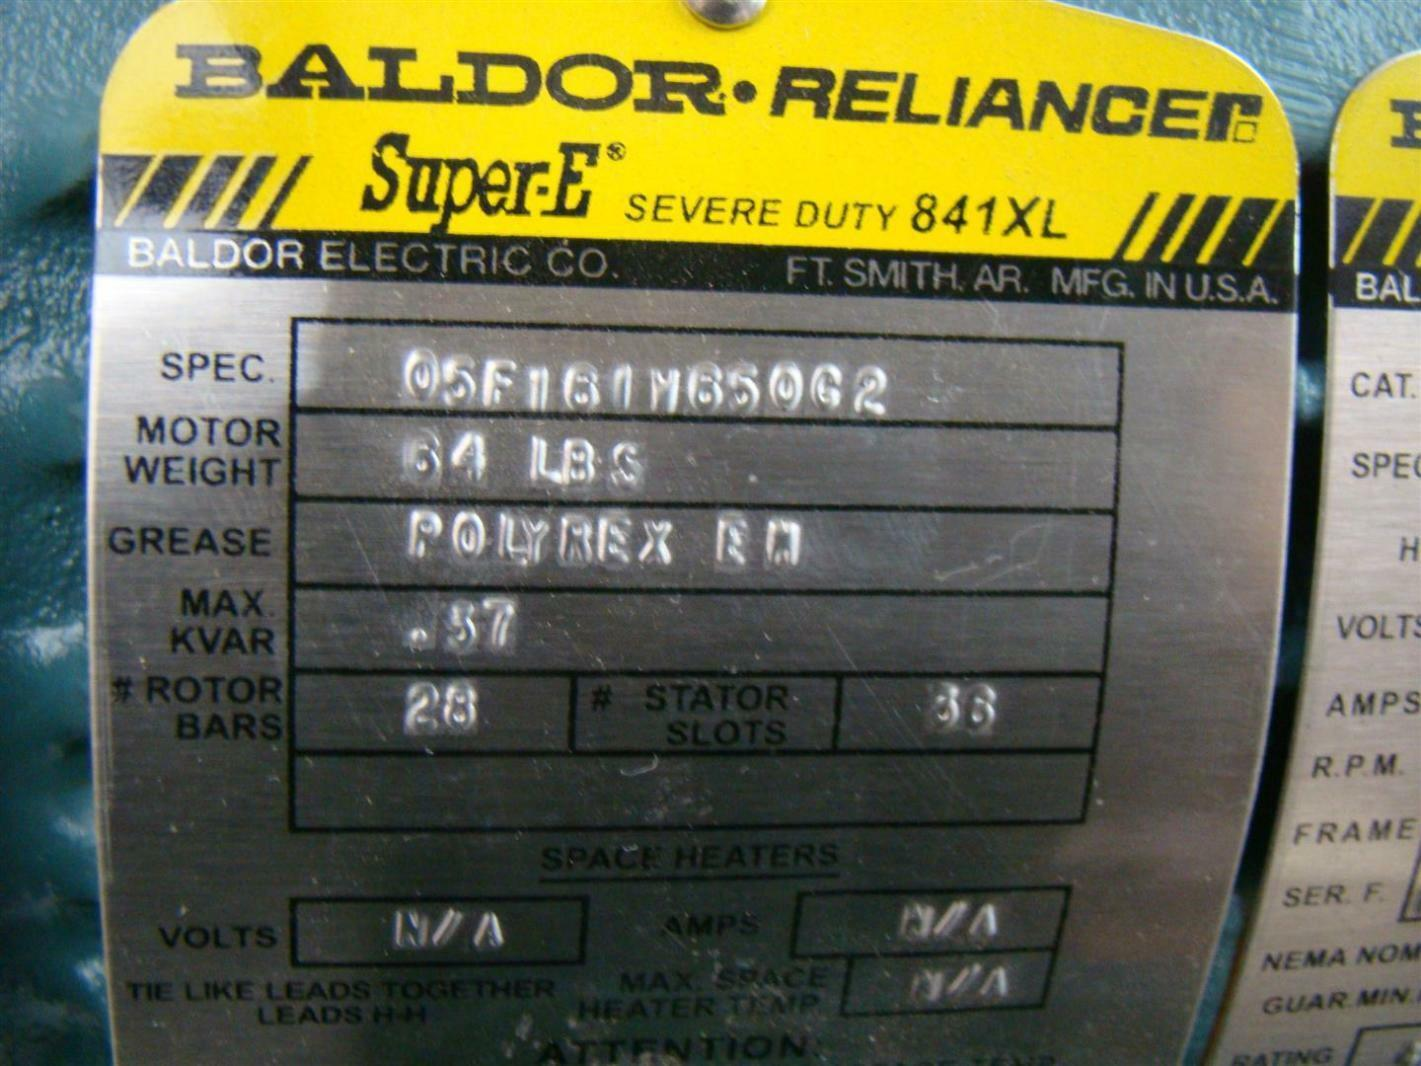 Baldor reliance pictures to pin on pinterest pinsdaddy for Baldor reliance super e motor